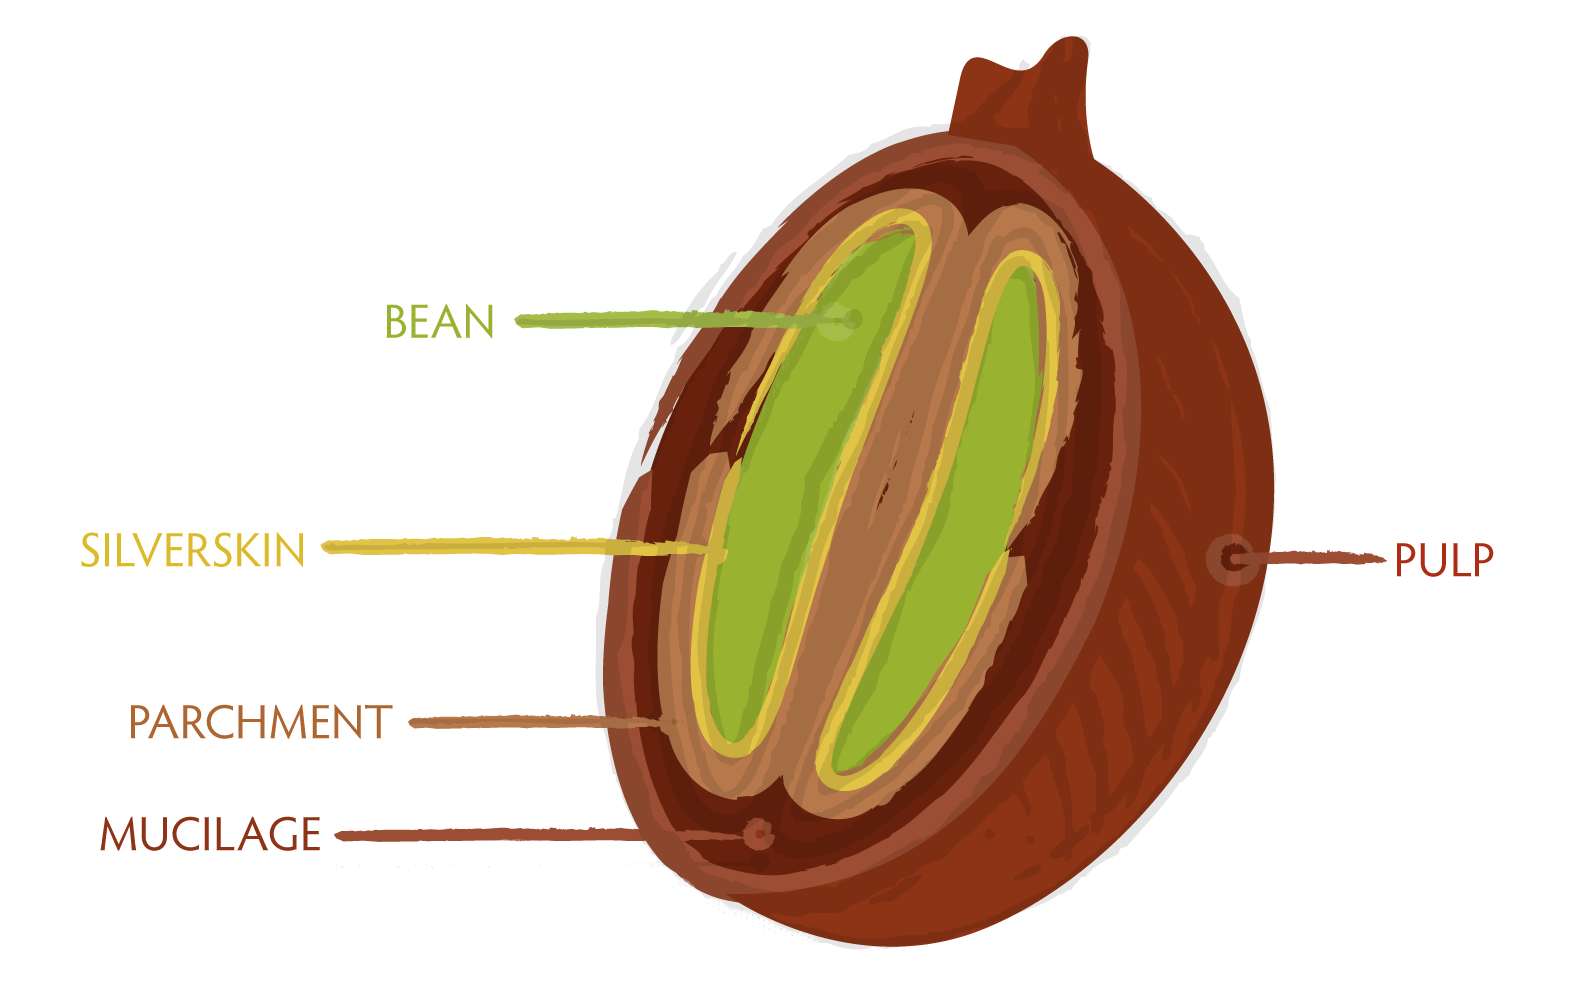 Image : Seattle Coffee Works - Anatomy of a Coffee Cherry